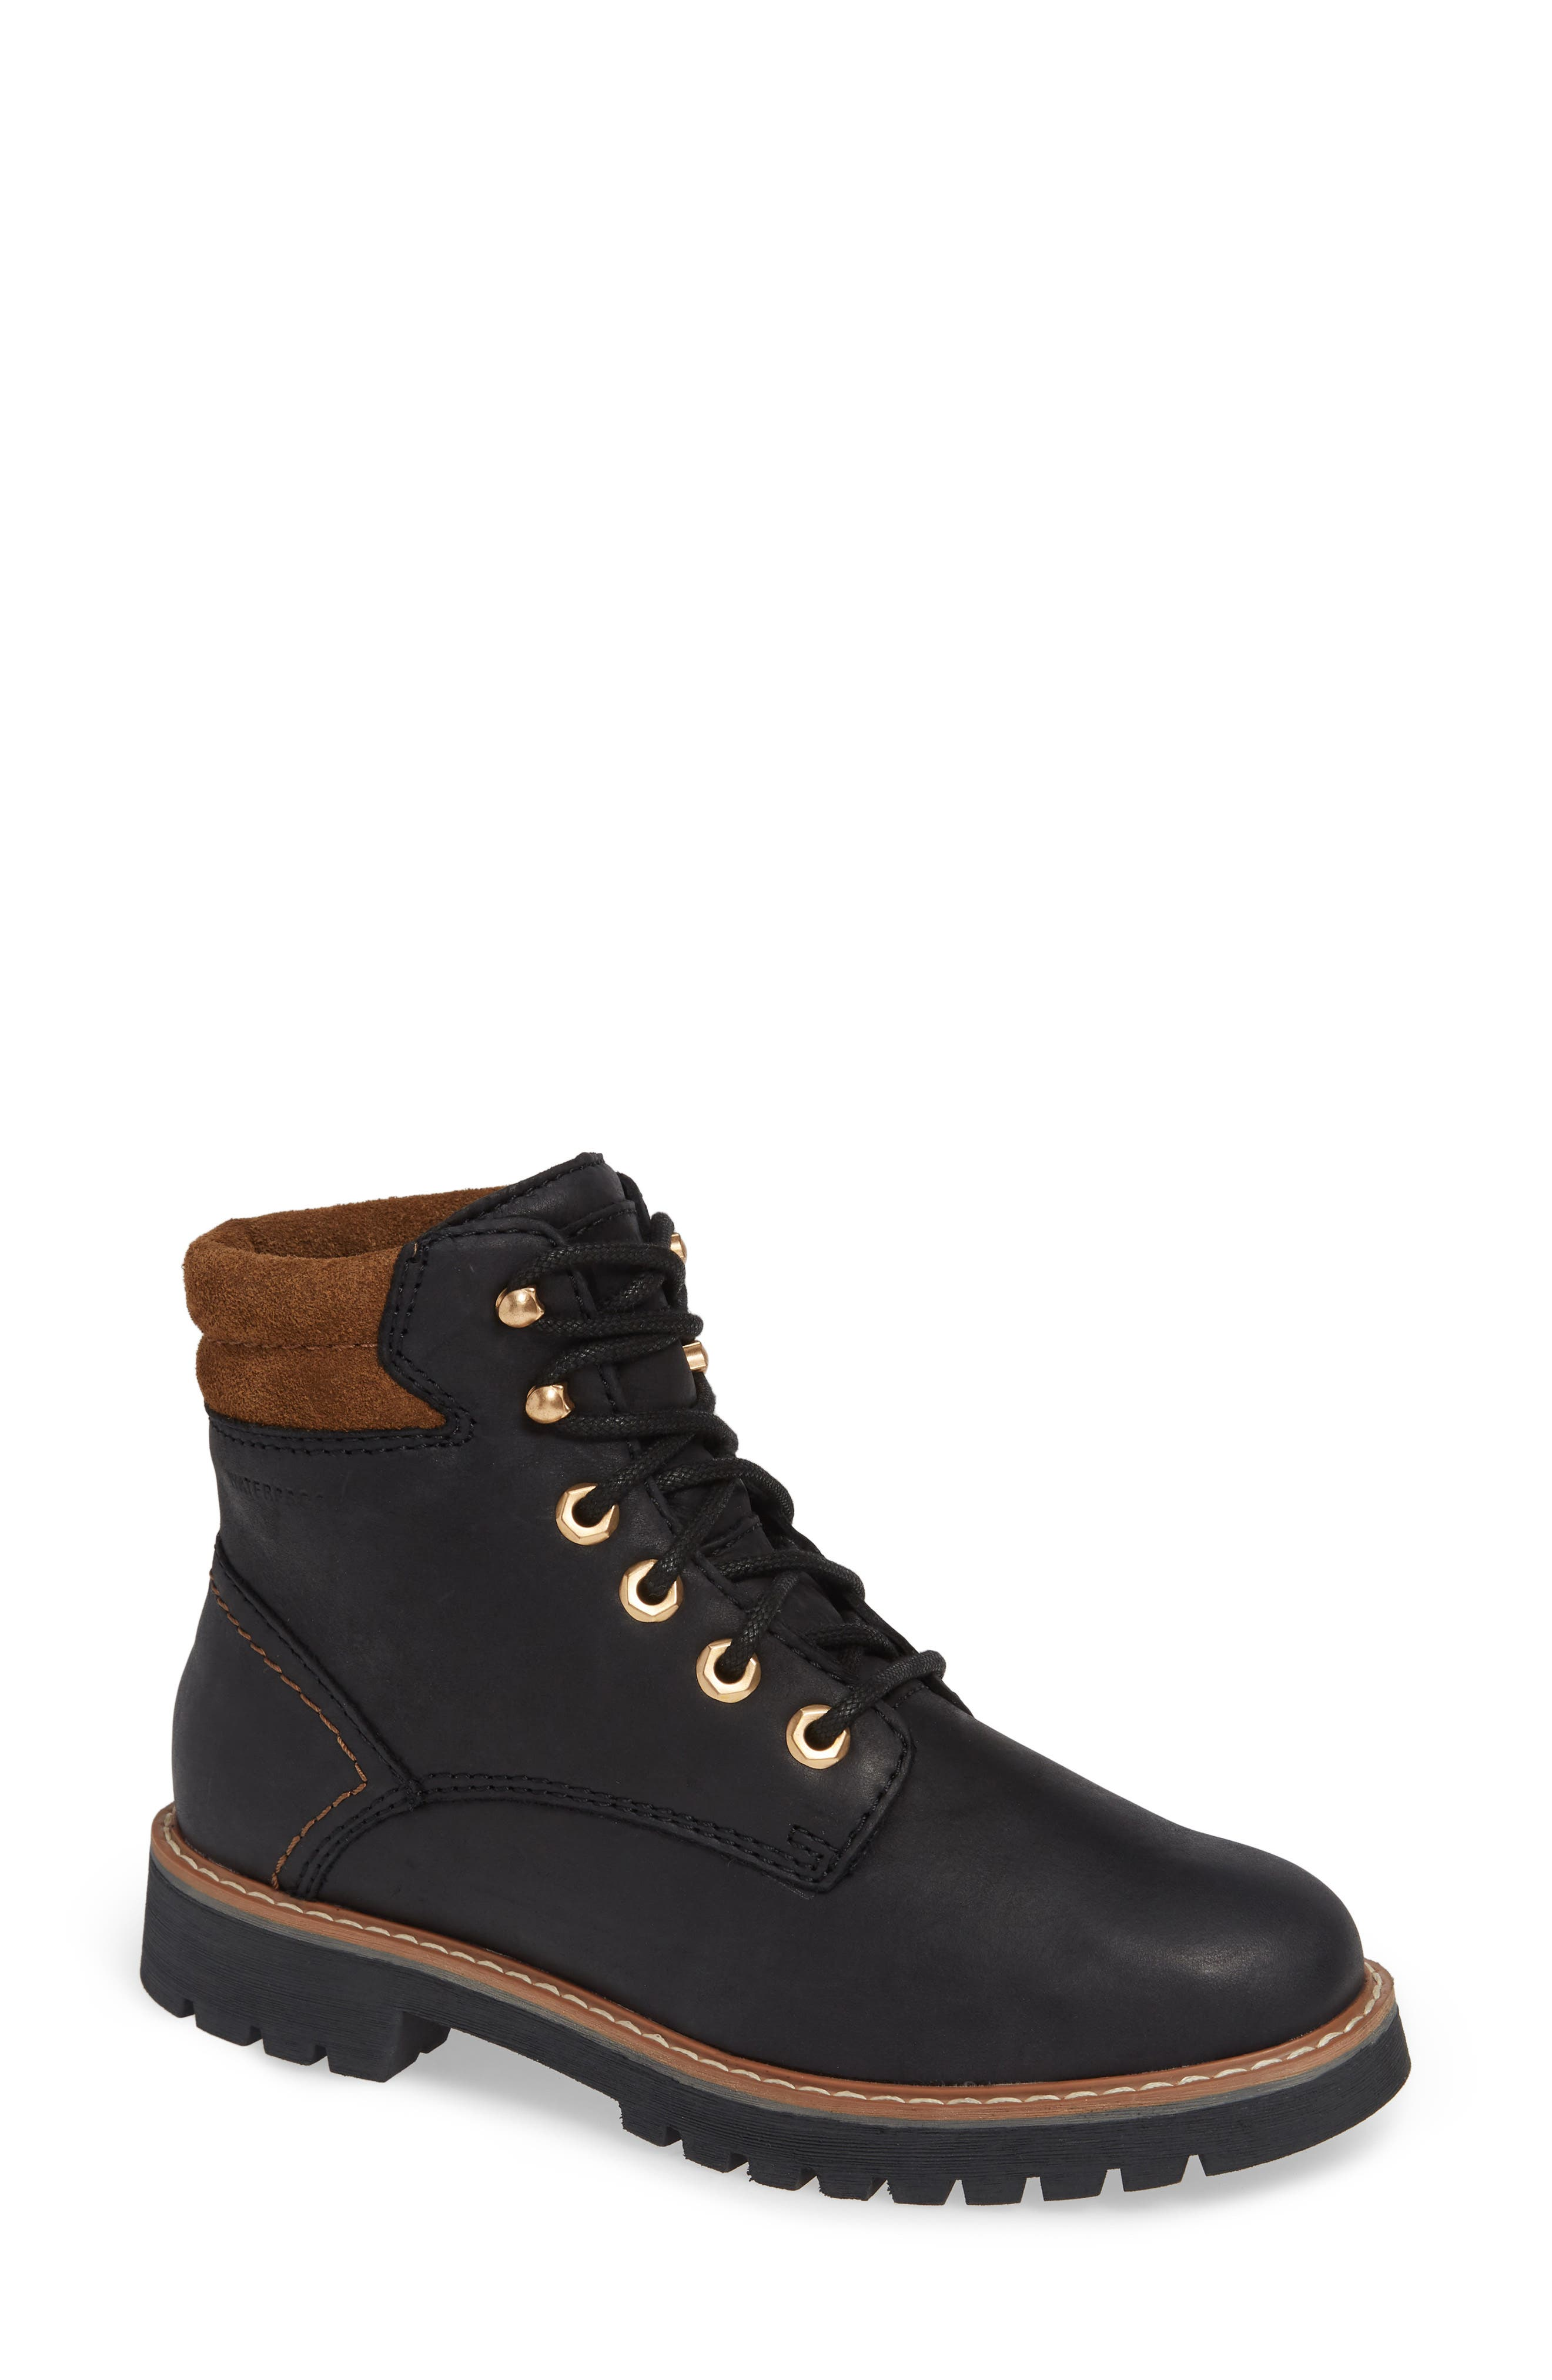 Heston Waterproof Insulated Hiking Boot,                         Main,                         color, BLACK LEATHER